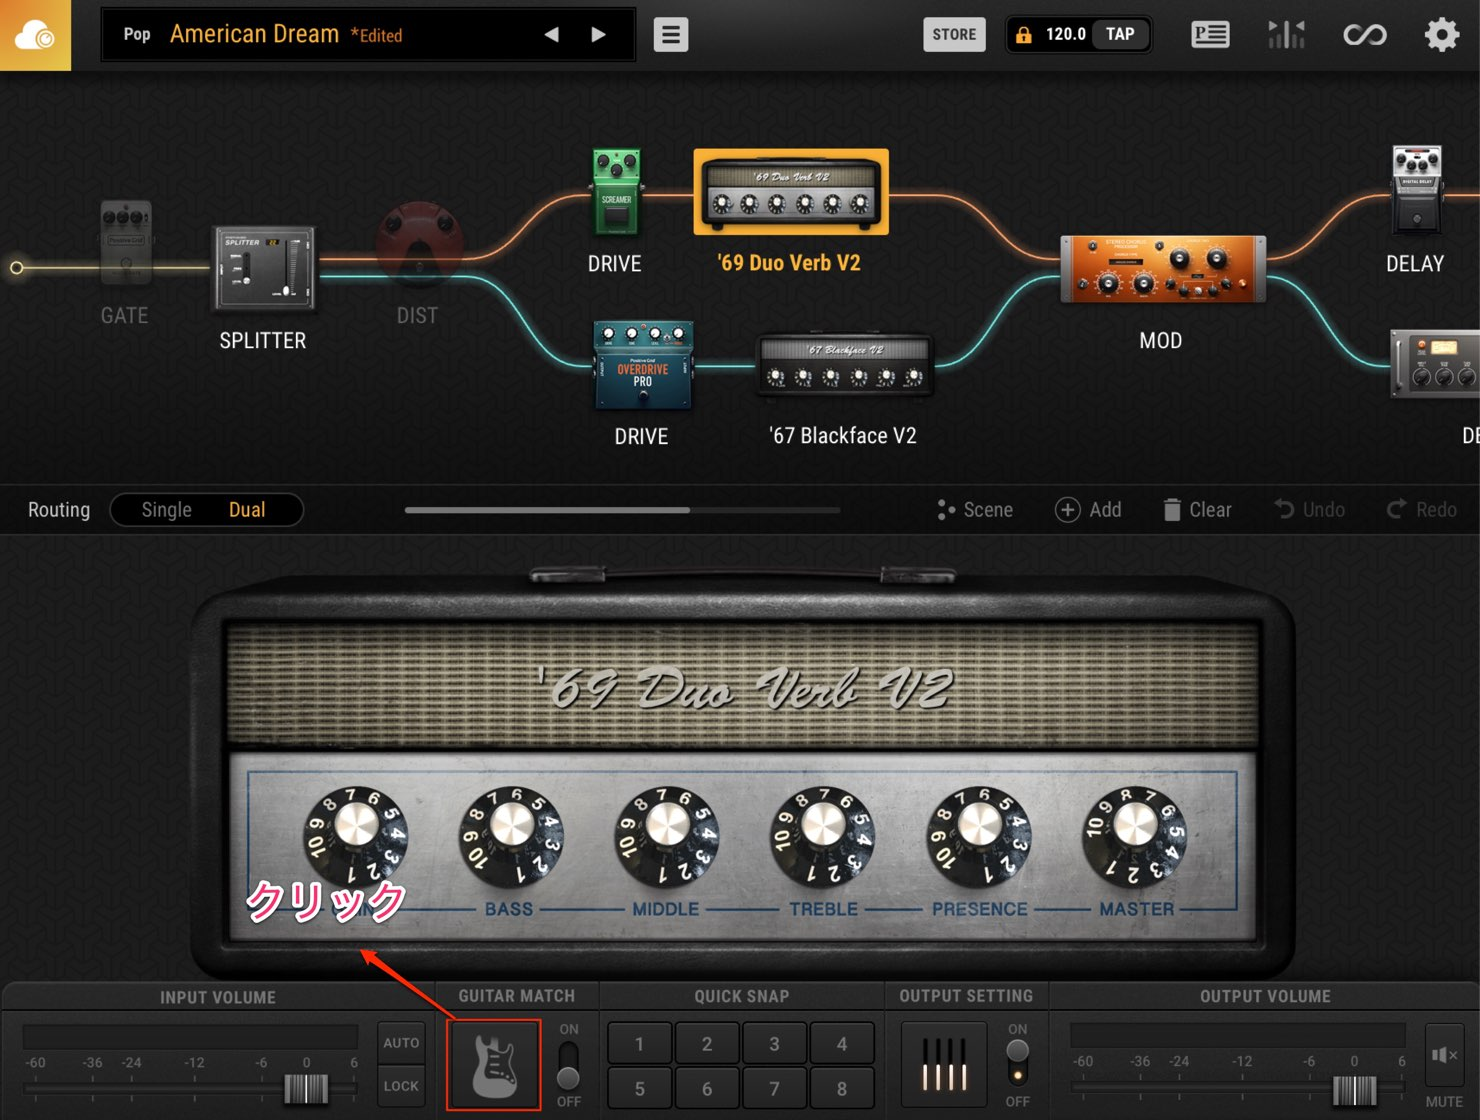 PositiveGrid-Bias-FX-2-8-Guitar-Match-1